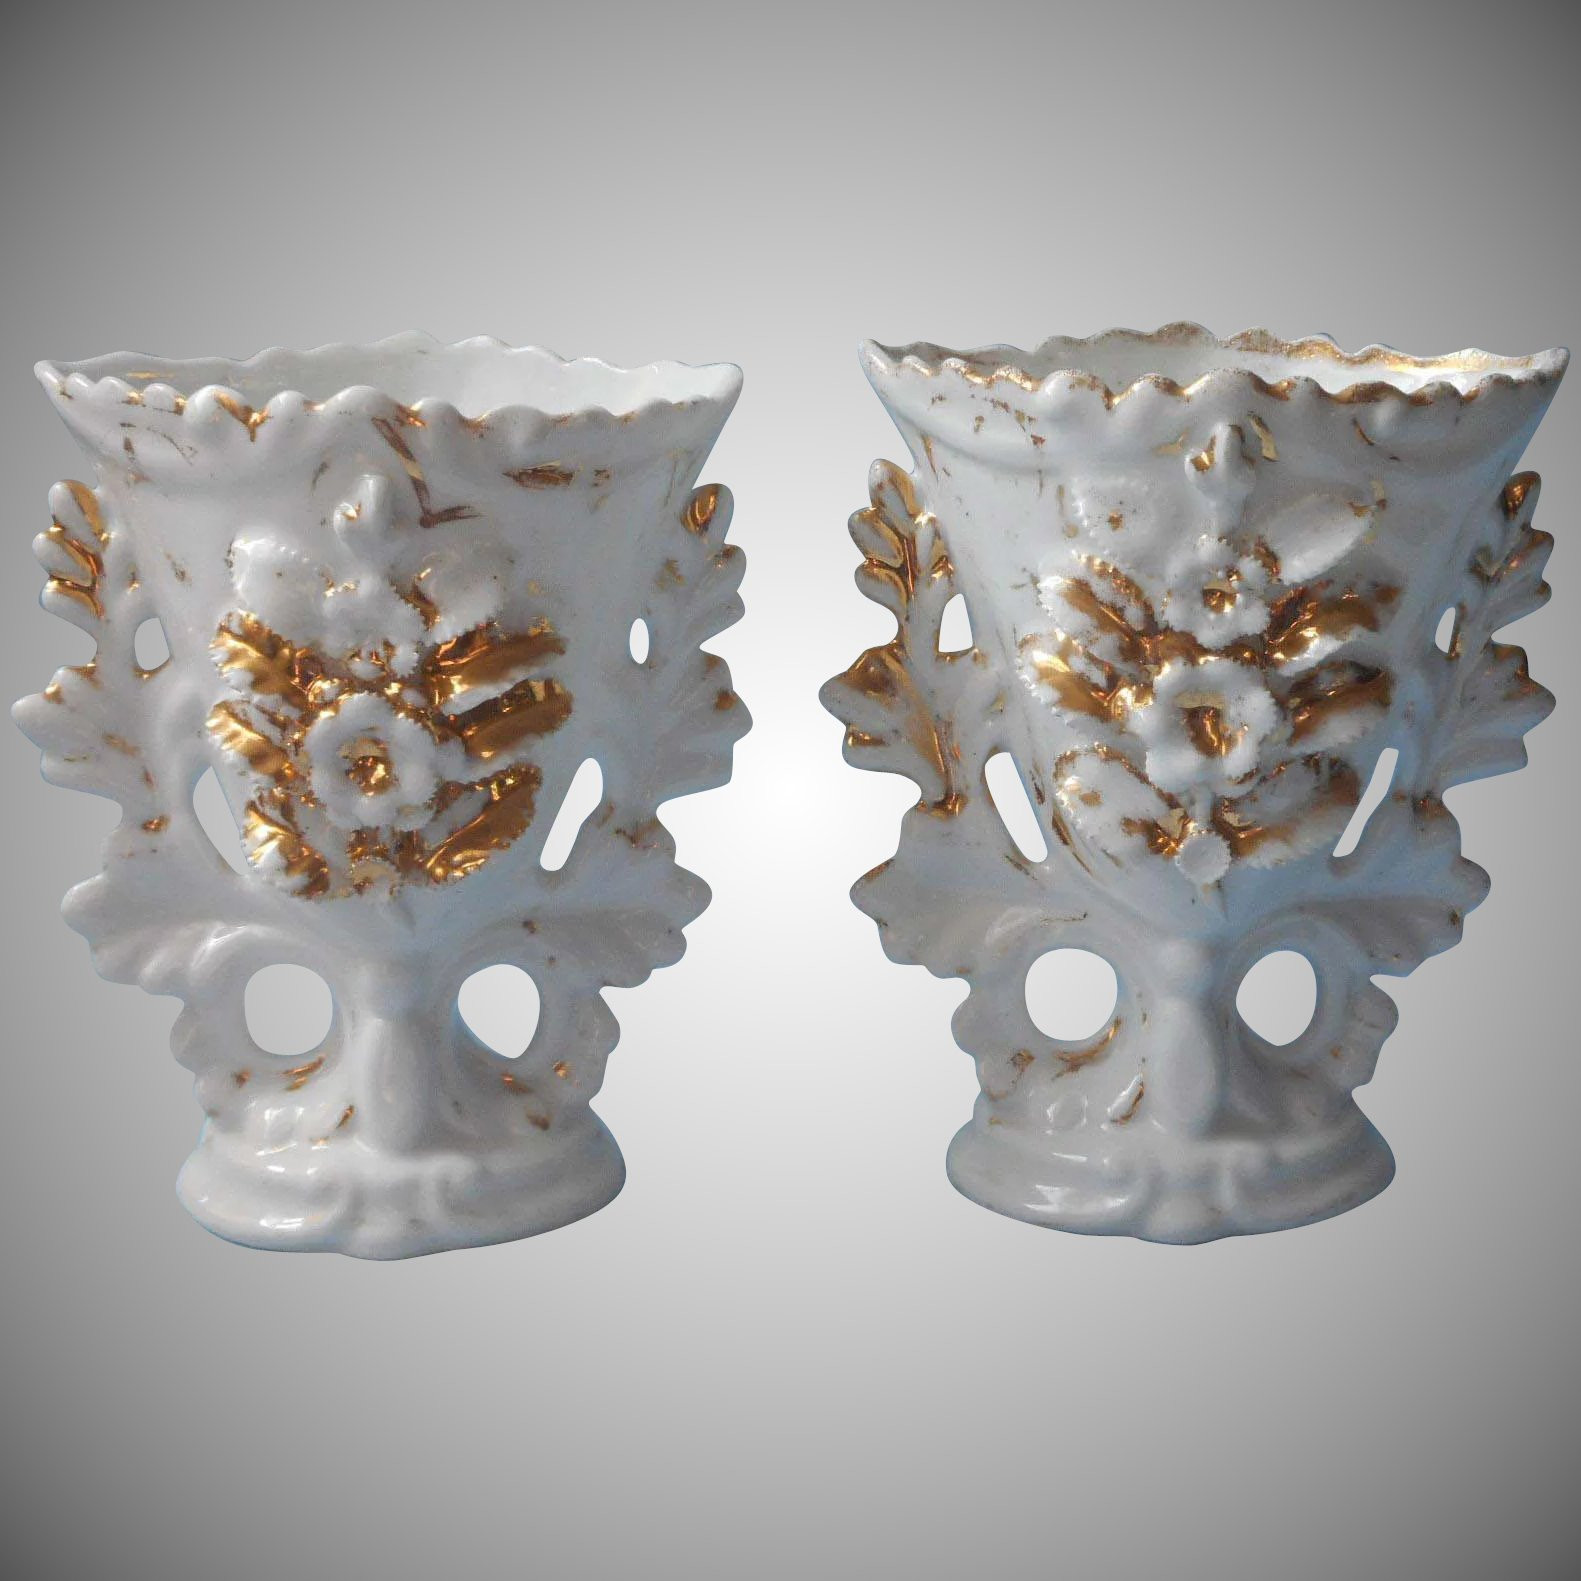 16 Perfect Antique Chinese Vases for Sale 2021 free download antique chinese vases for sale of victorian mantel vases pair gold white antique china mercy maude with regard to victorian mantel vases pair gold white antique china click to expand